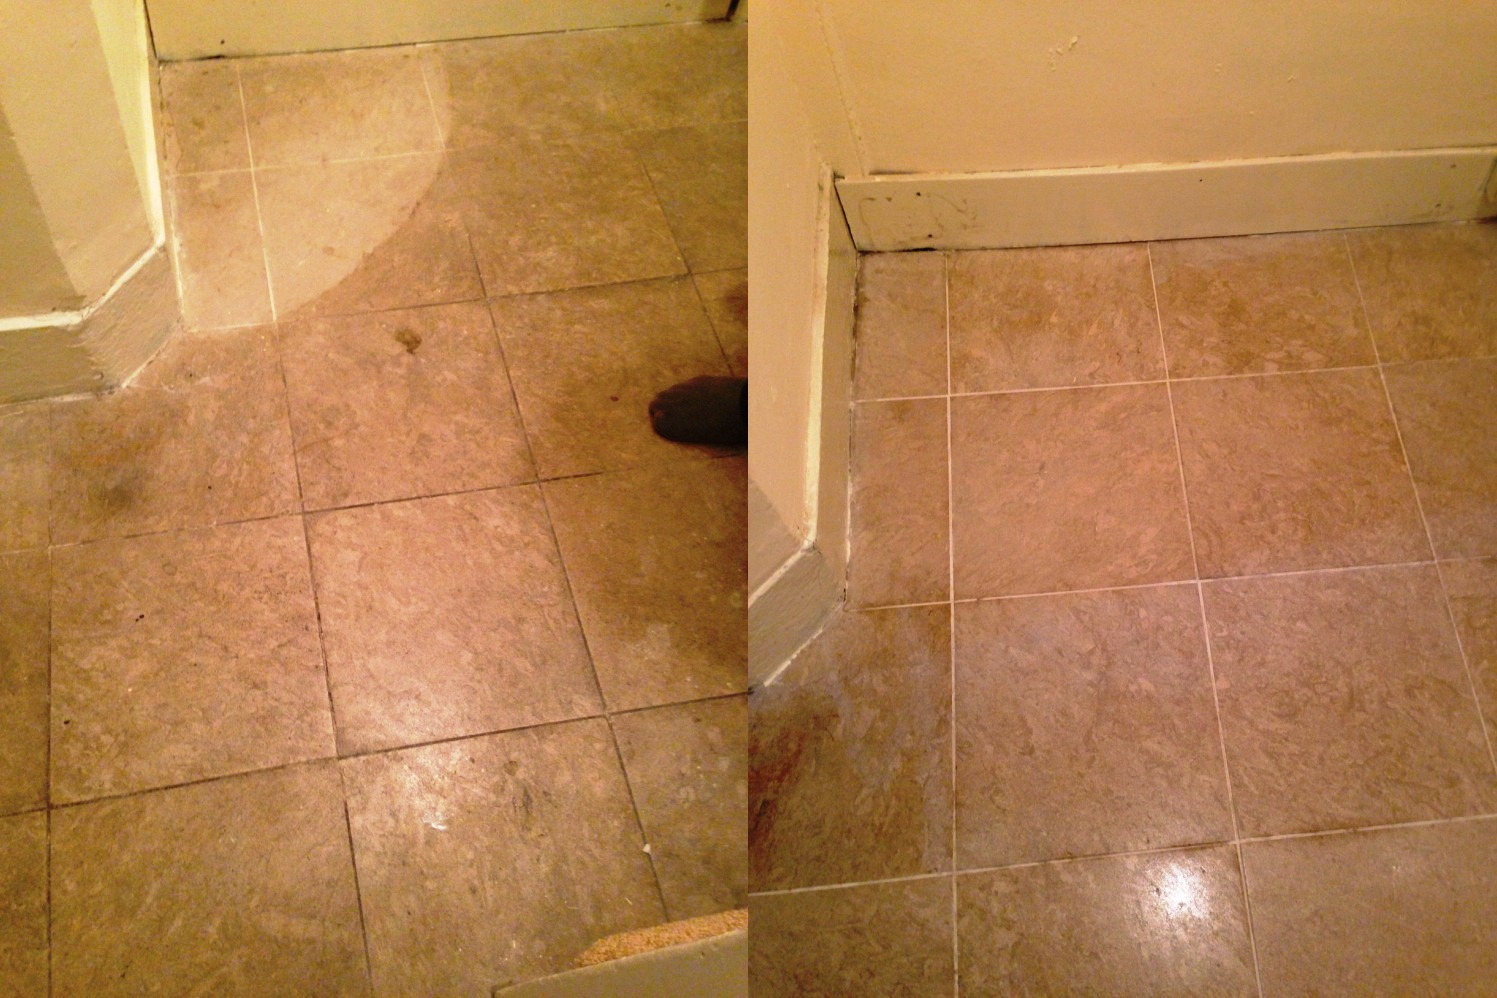 Tiled floor stone cleaning and polishing tips for limestone floors limestone tiled floor kensington before and after cleaning dailygadgetfo Image collections